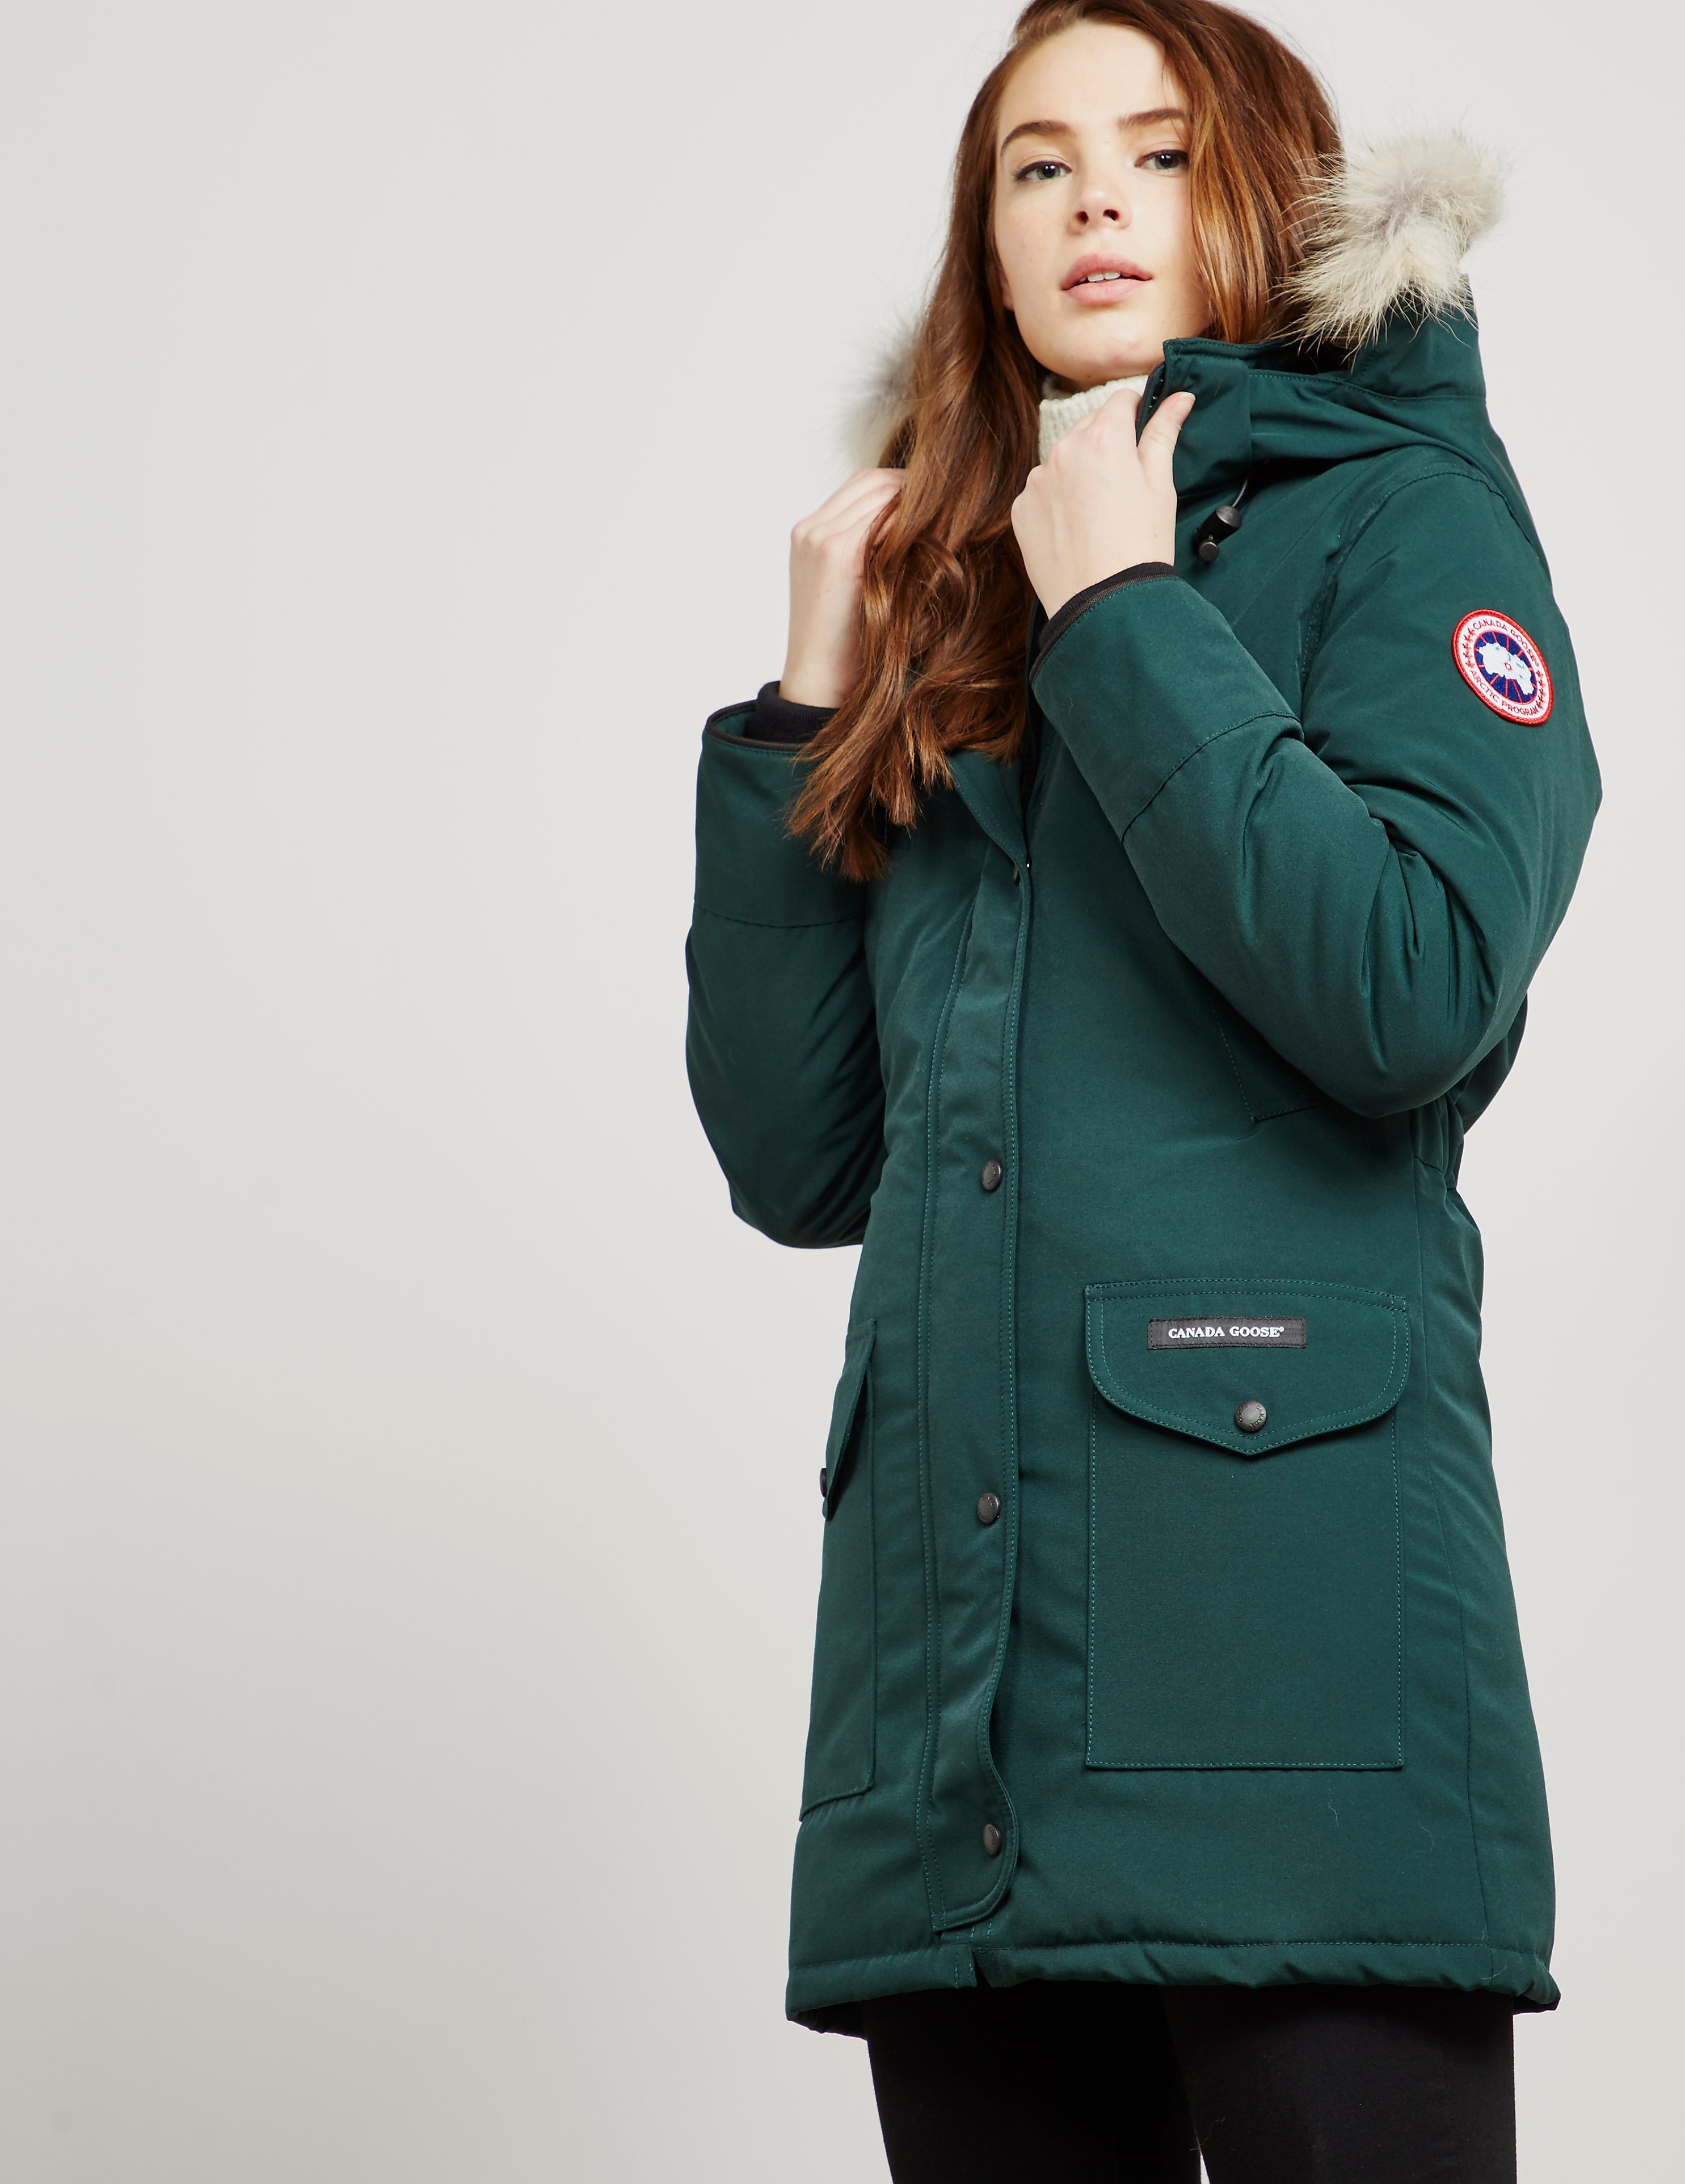 57c73ab09cf ... new zealand canada goose womens canada goose trillium padded parka  jacket green green 659.00 bluewater 1433f